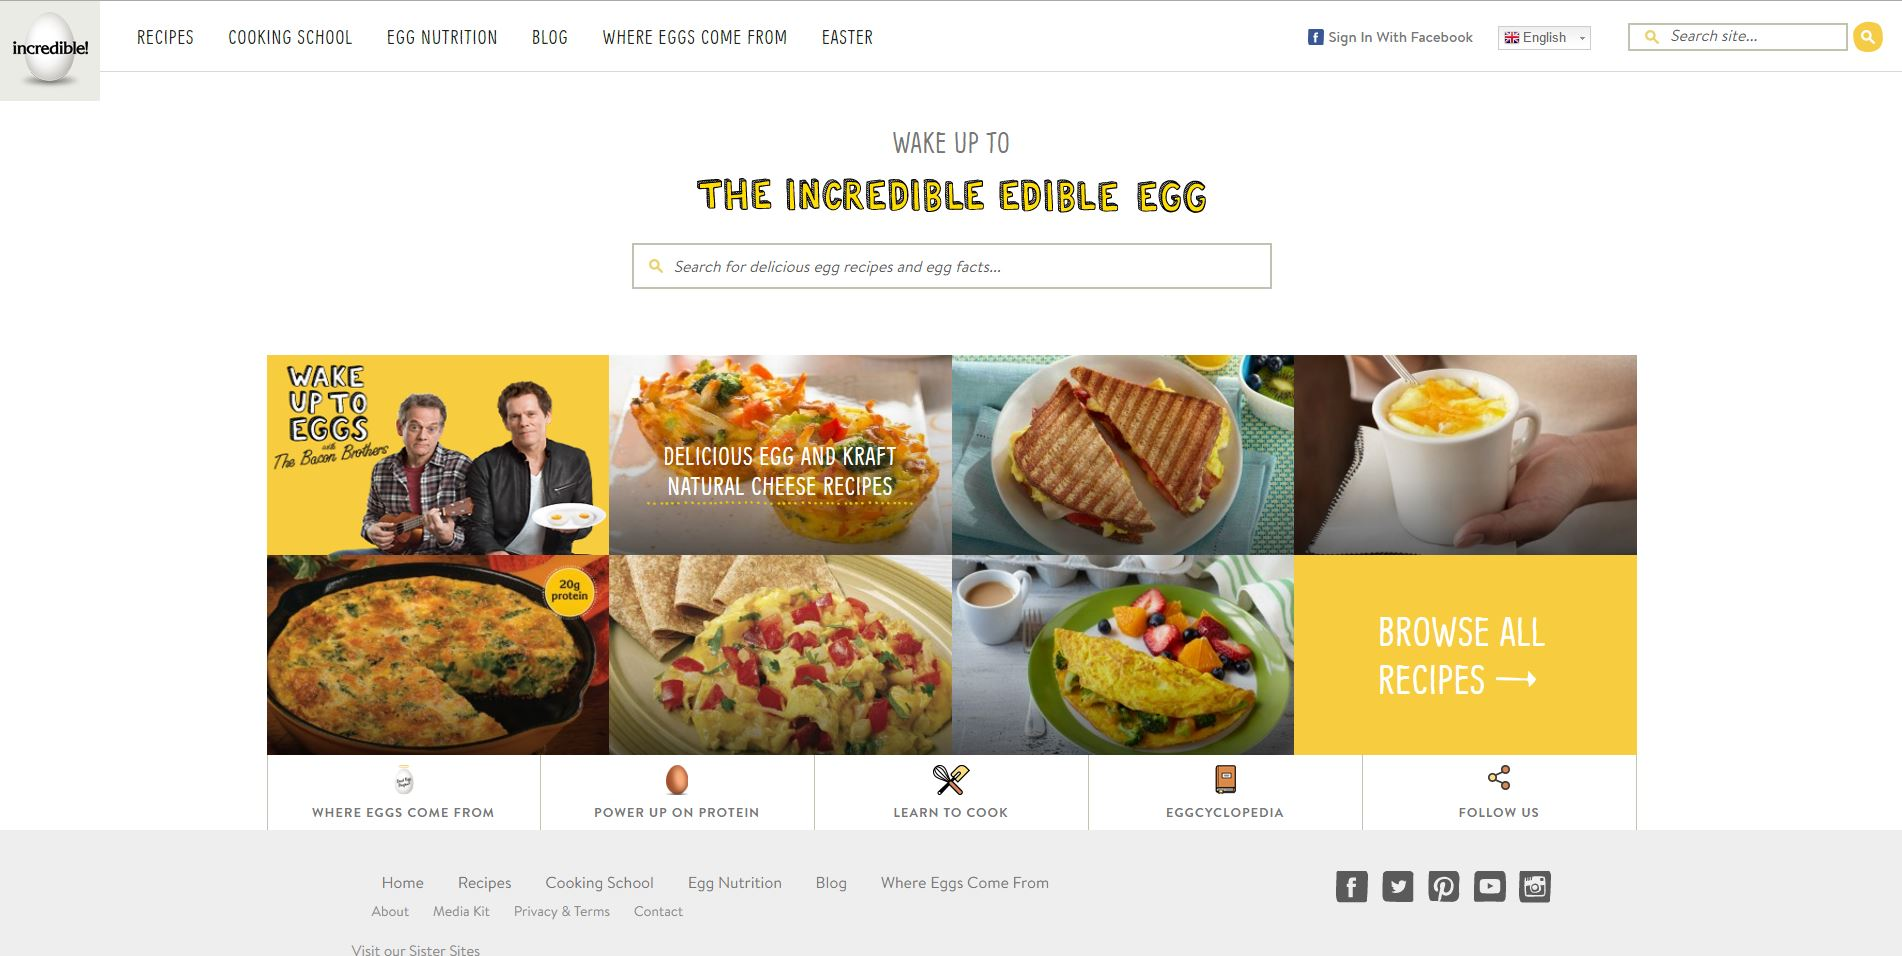 IncredibleEgg.org